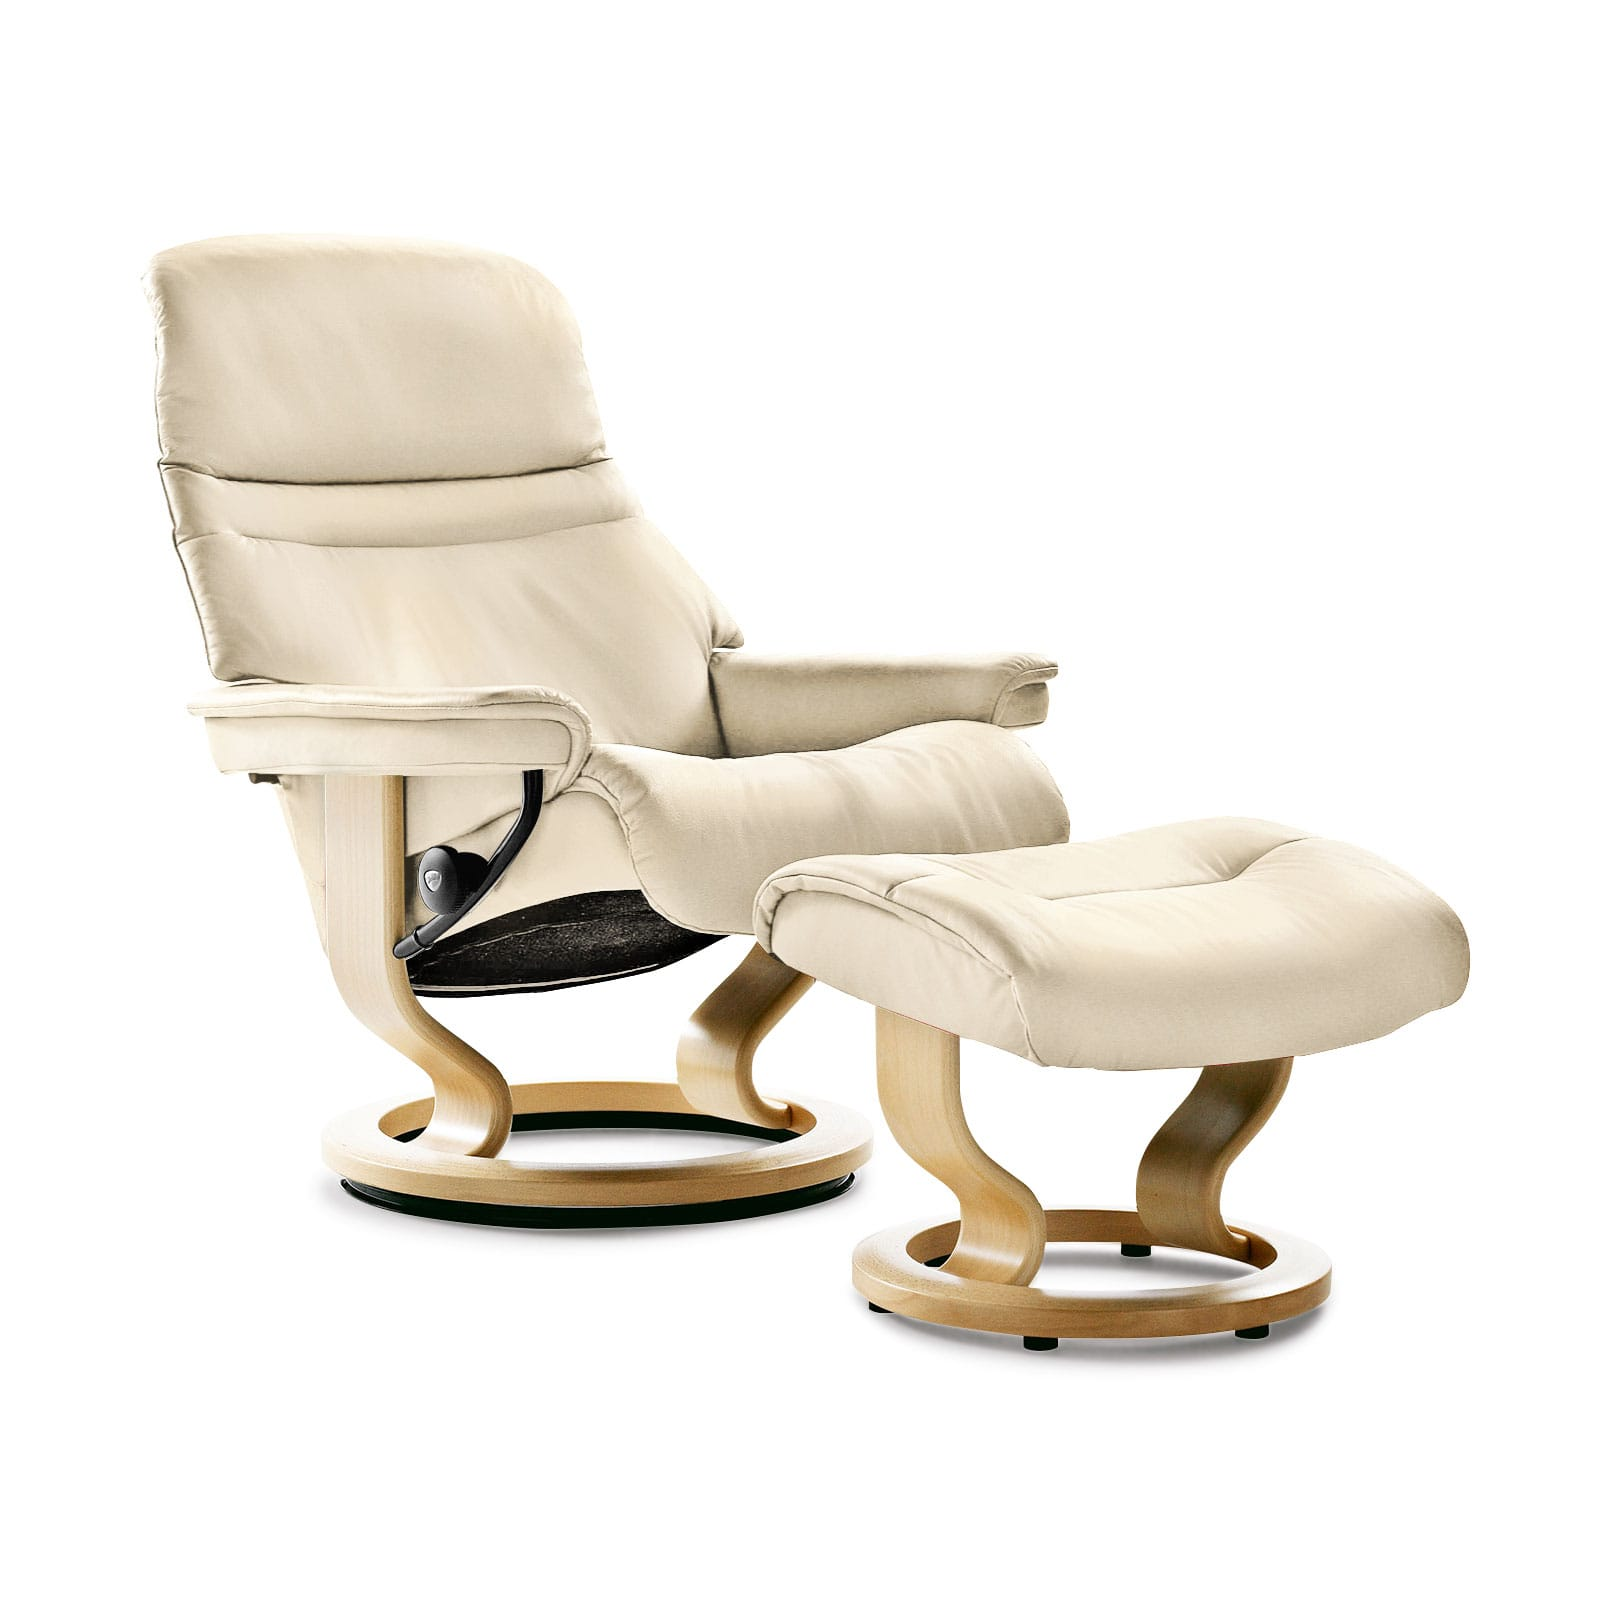 Sessel M Stressless Sessel Sunrise Classic M Batick Cream Mit Hocker